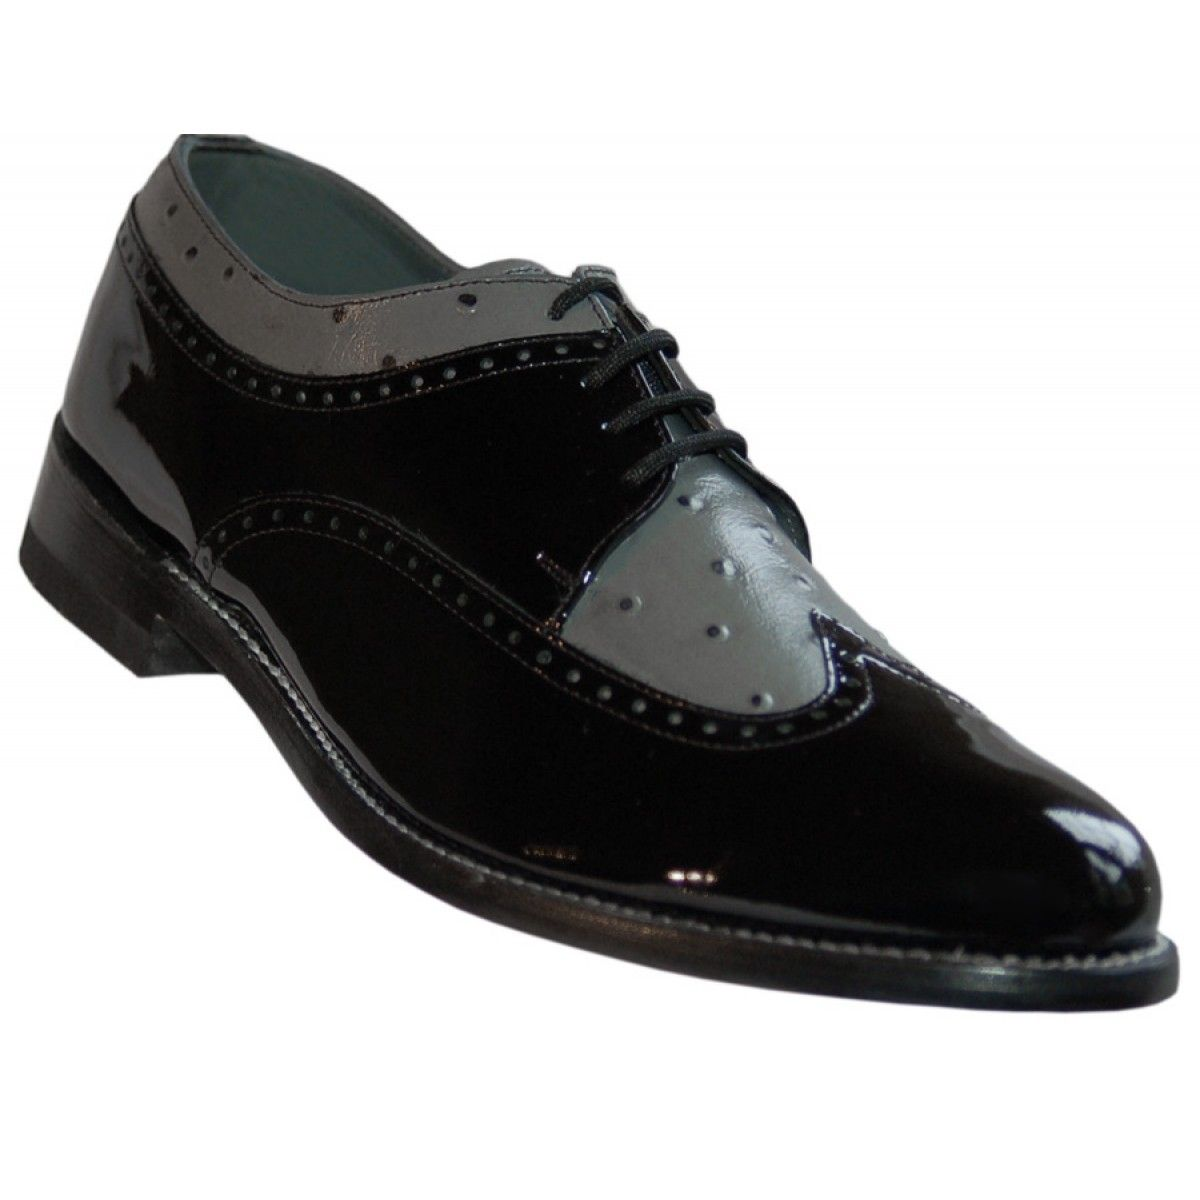 Black/Grey Patent leather Shoes